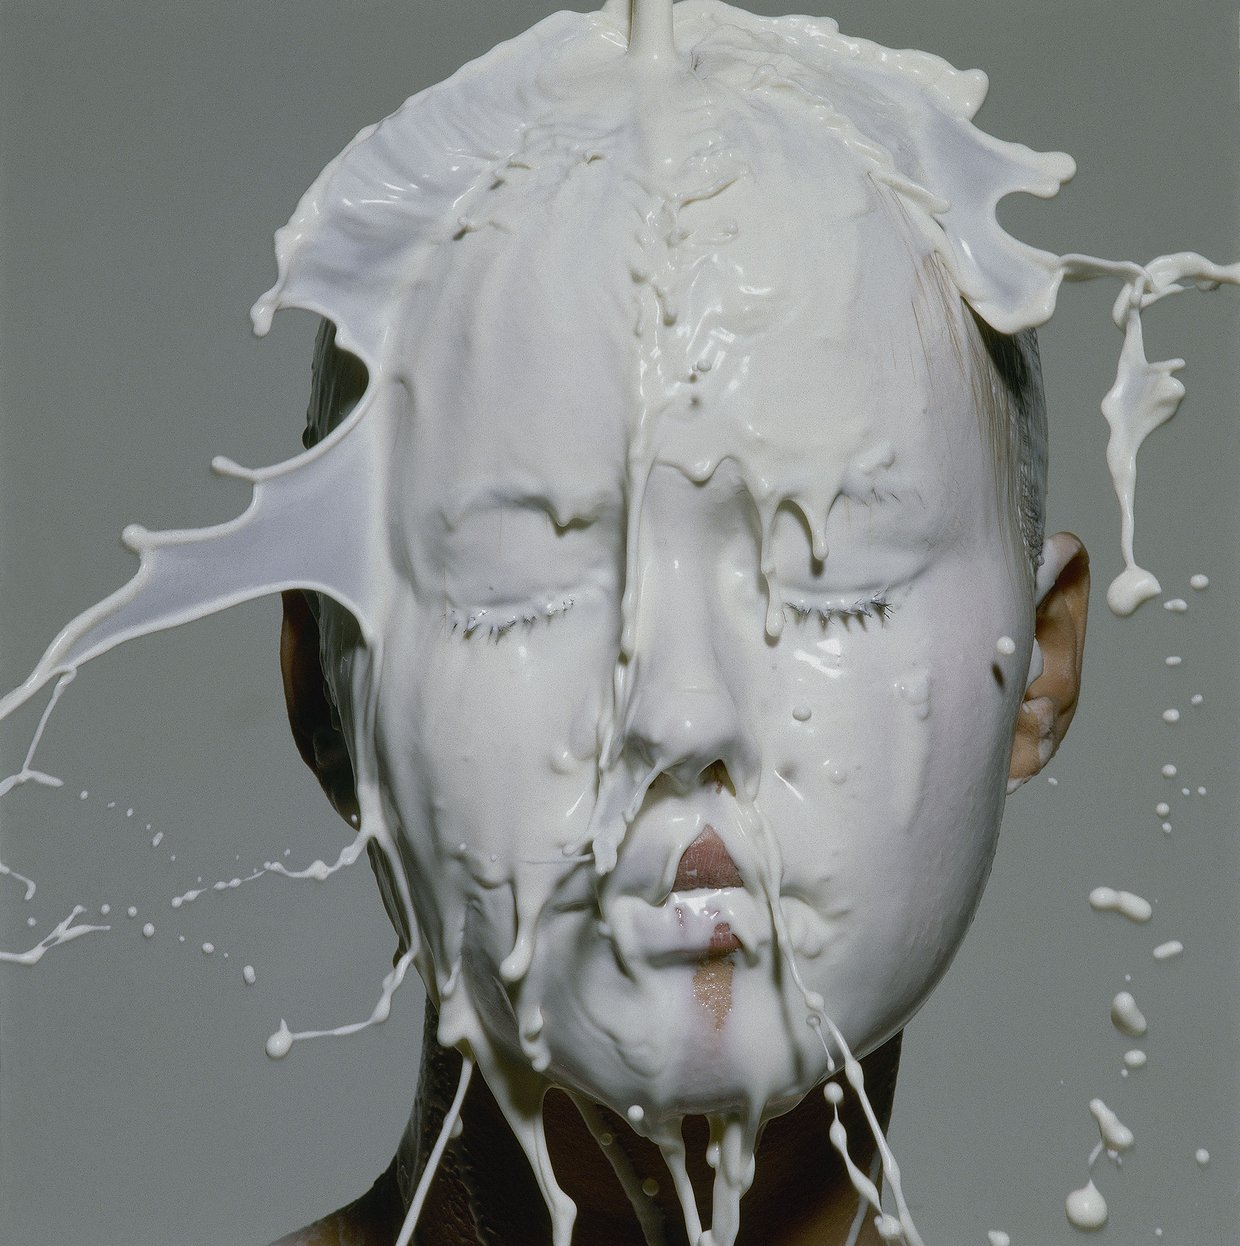 face-wash-irving-penn